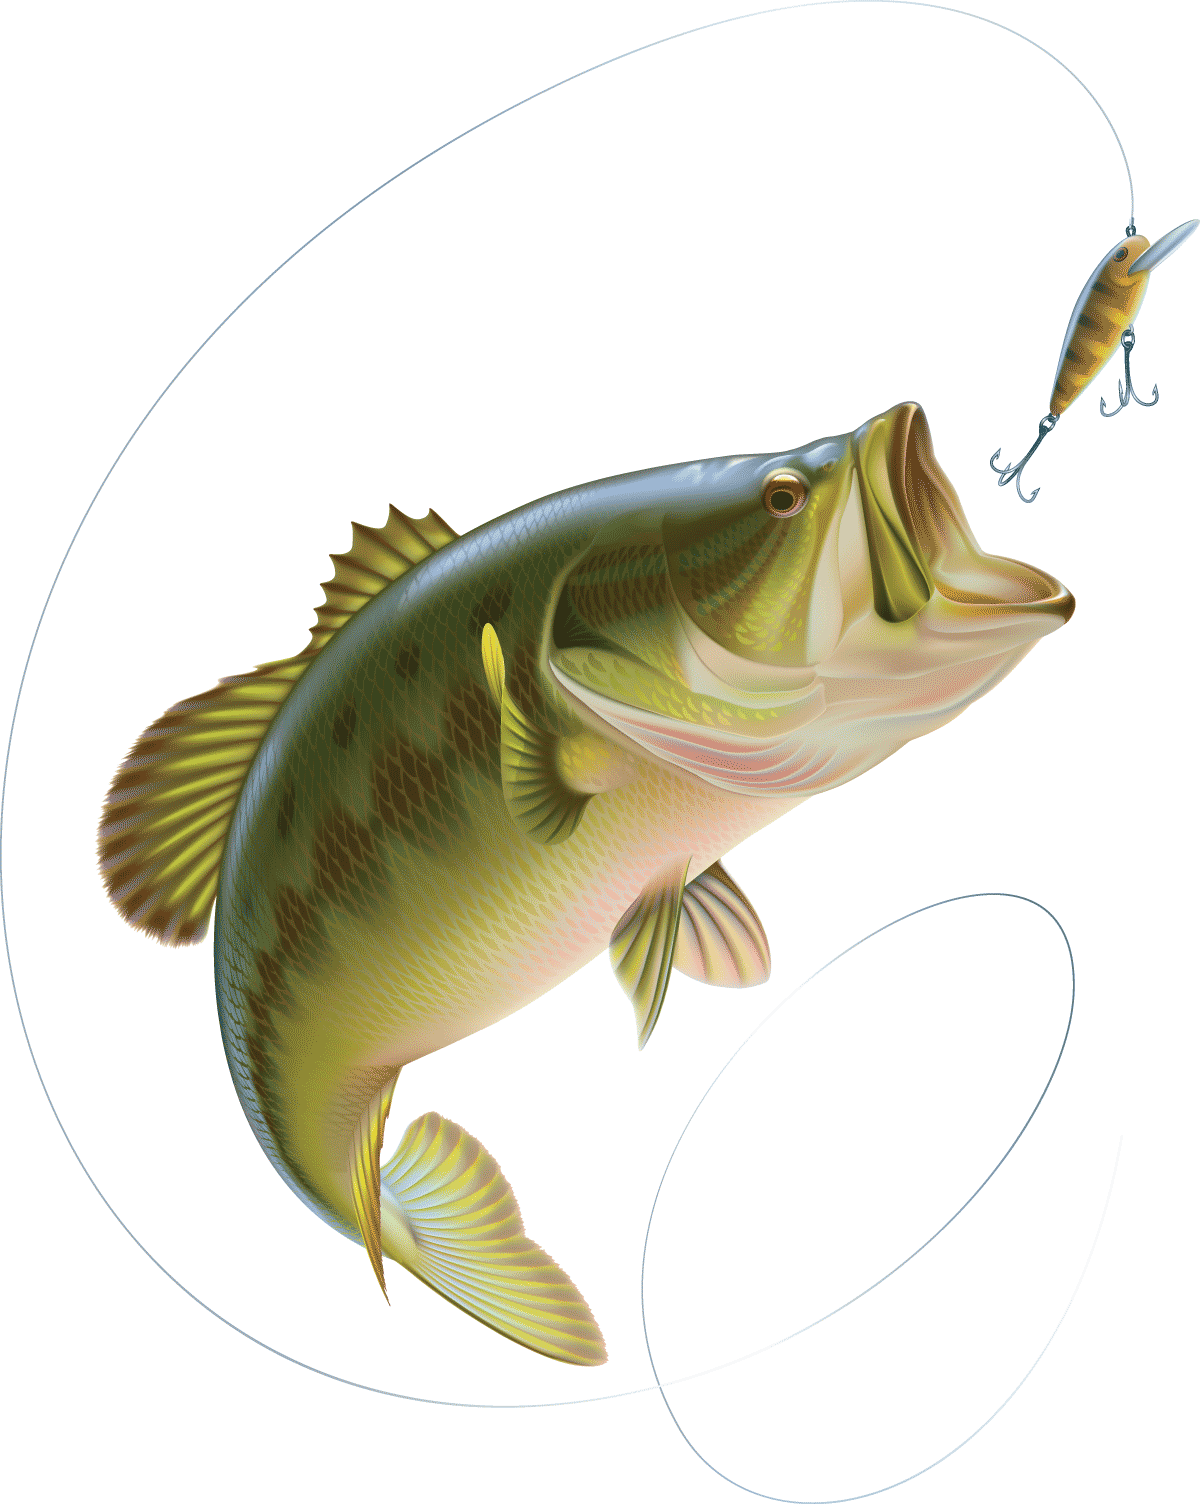 The summer can be slow for bass fishermen. The water is warm and the oxygen that fish need for peak activity is not found in warmer water. Therefore they tend to go deeper or become more active when the days are at their coolest.